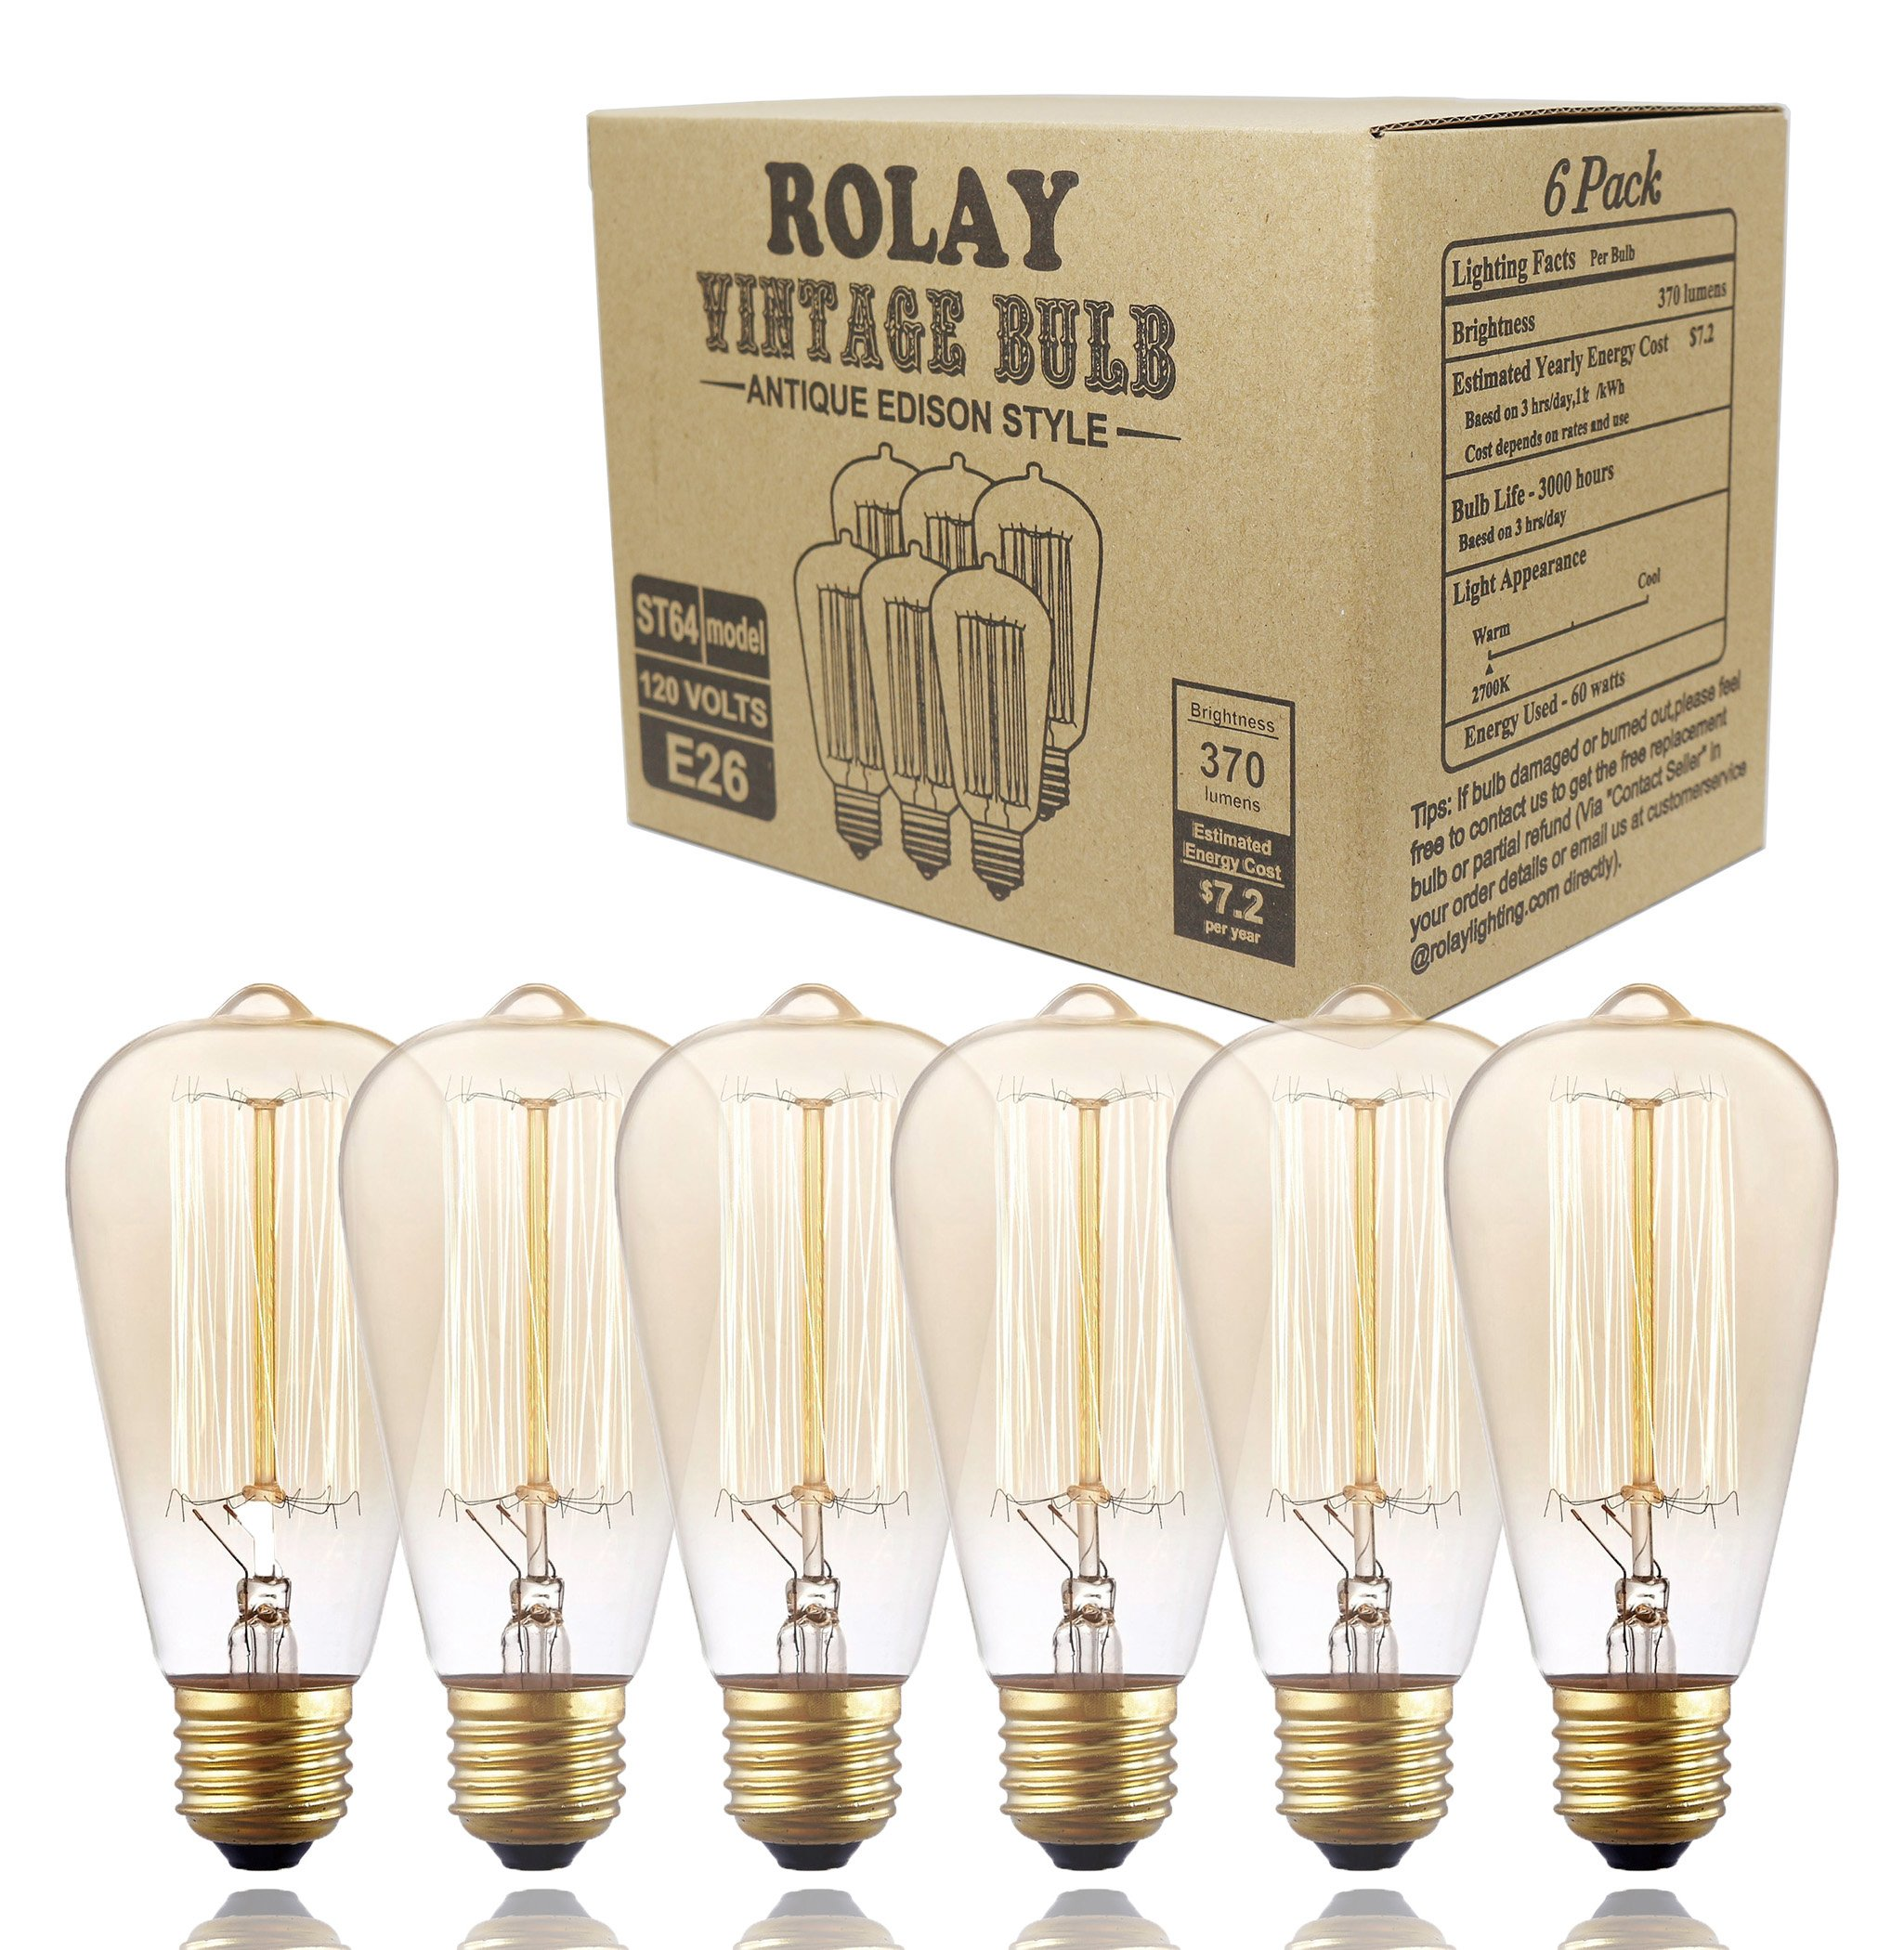 6 Pack, Rolay 25 Watt Vintage Edison Light Bulb with Squirrel Cage Filament, 110~130 Volts, E26 Base, 70 Lumens